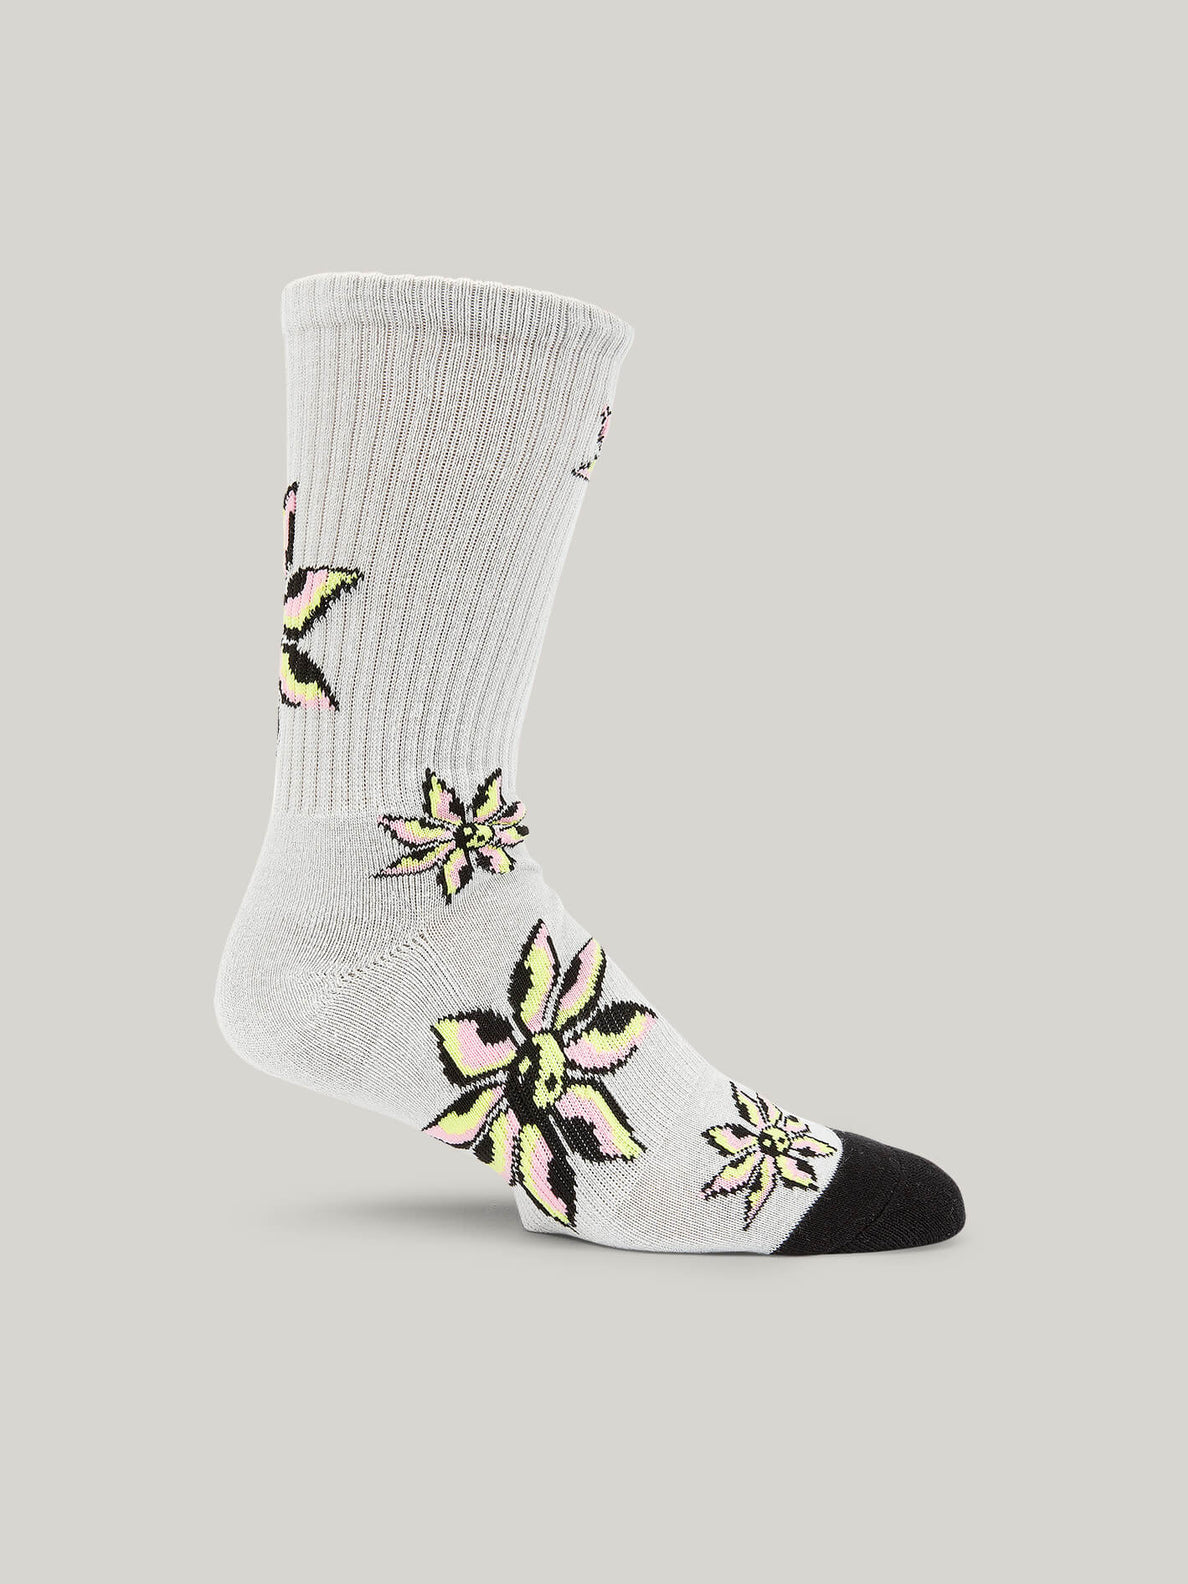 BURCH SOCK - TOWER GREY (D6322001_TWR) [B]